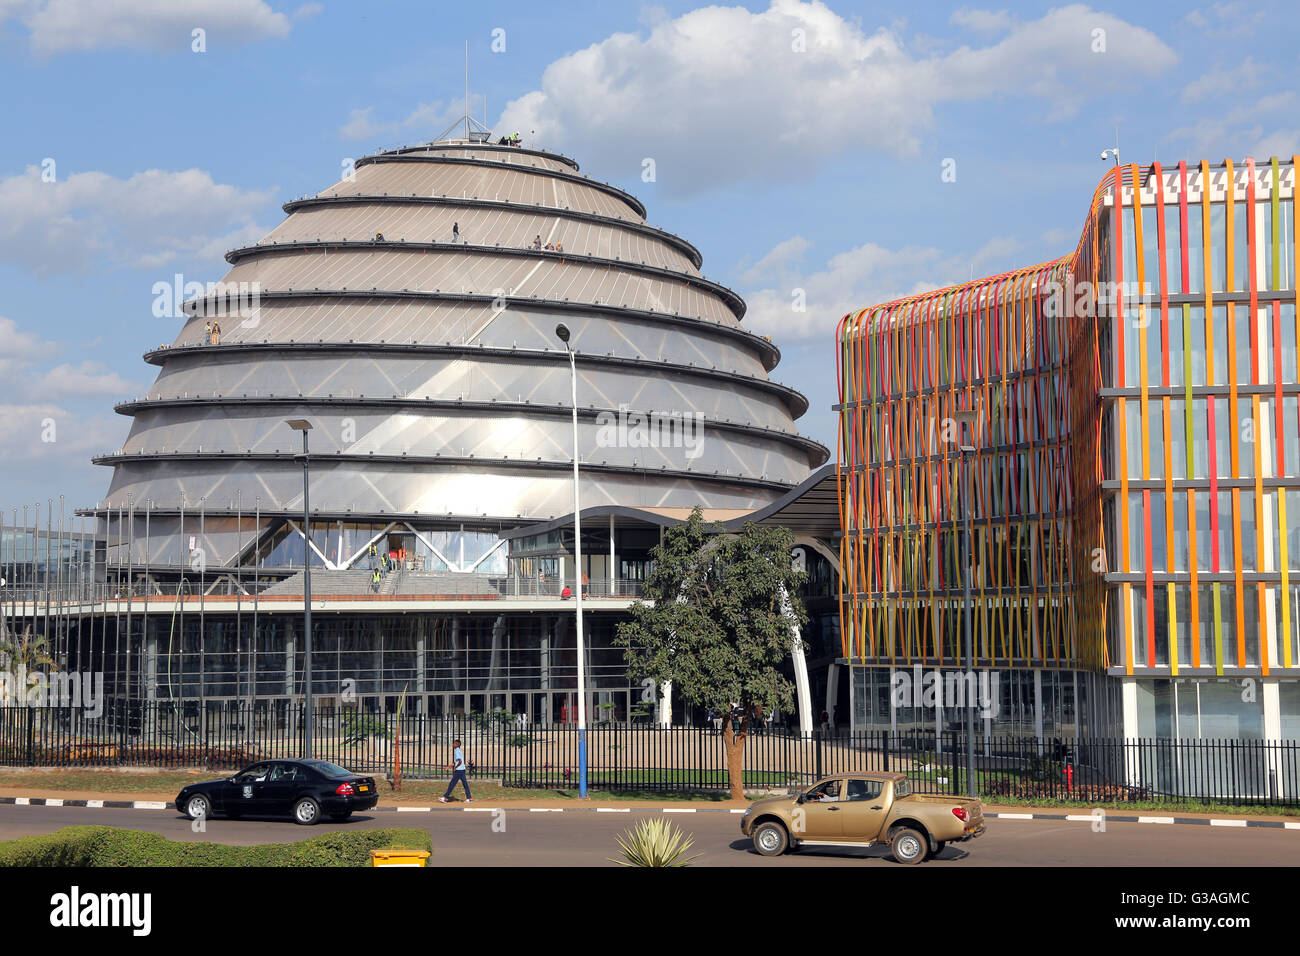 Dome of the newly build Kigali Convention Center, opening July 2016. Kigali, Rwanda - Stock Image